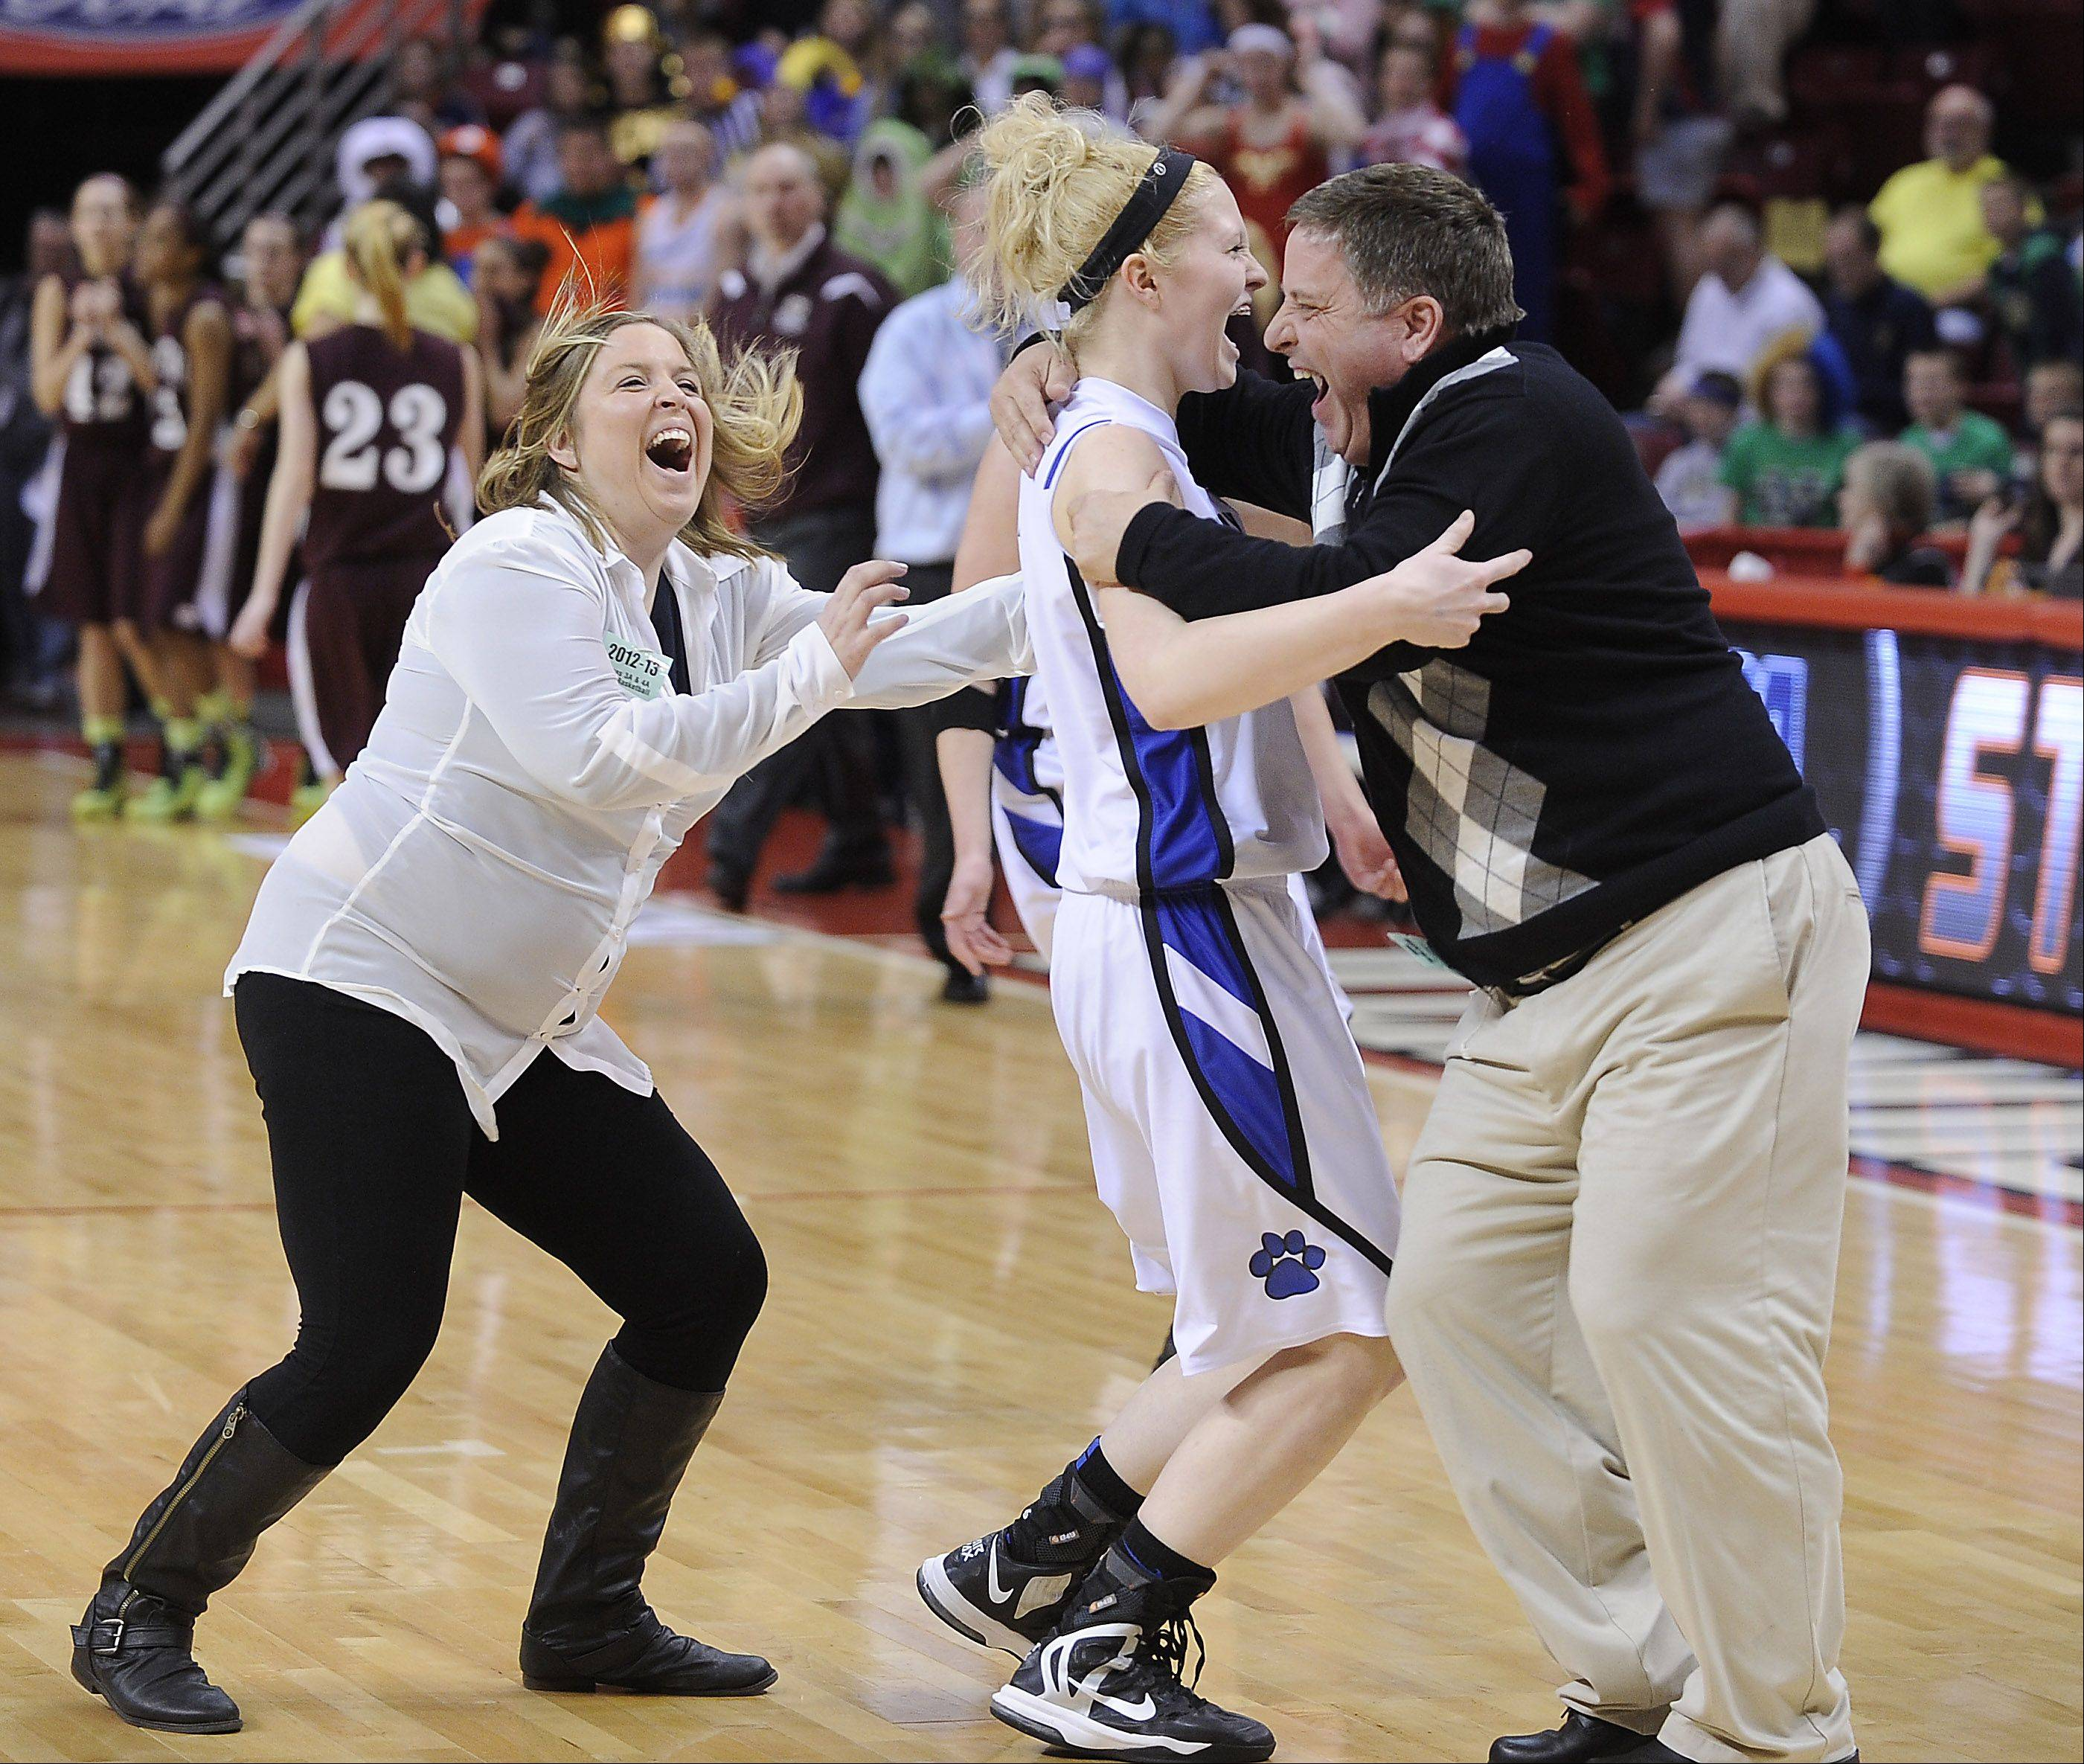 Vernon Hills' Sydney Smith celebrates with her coaches.